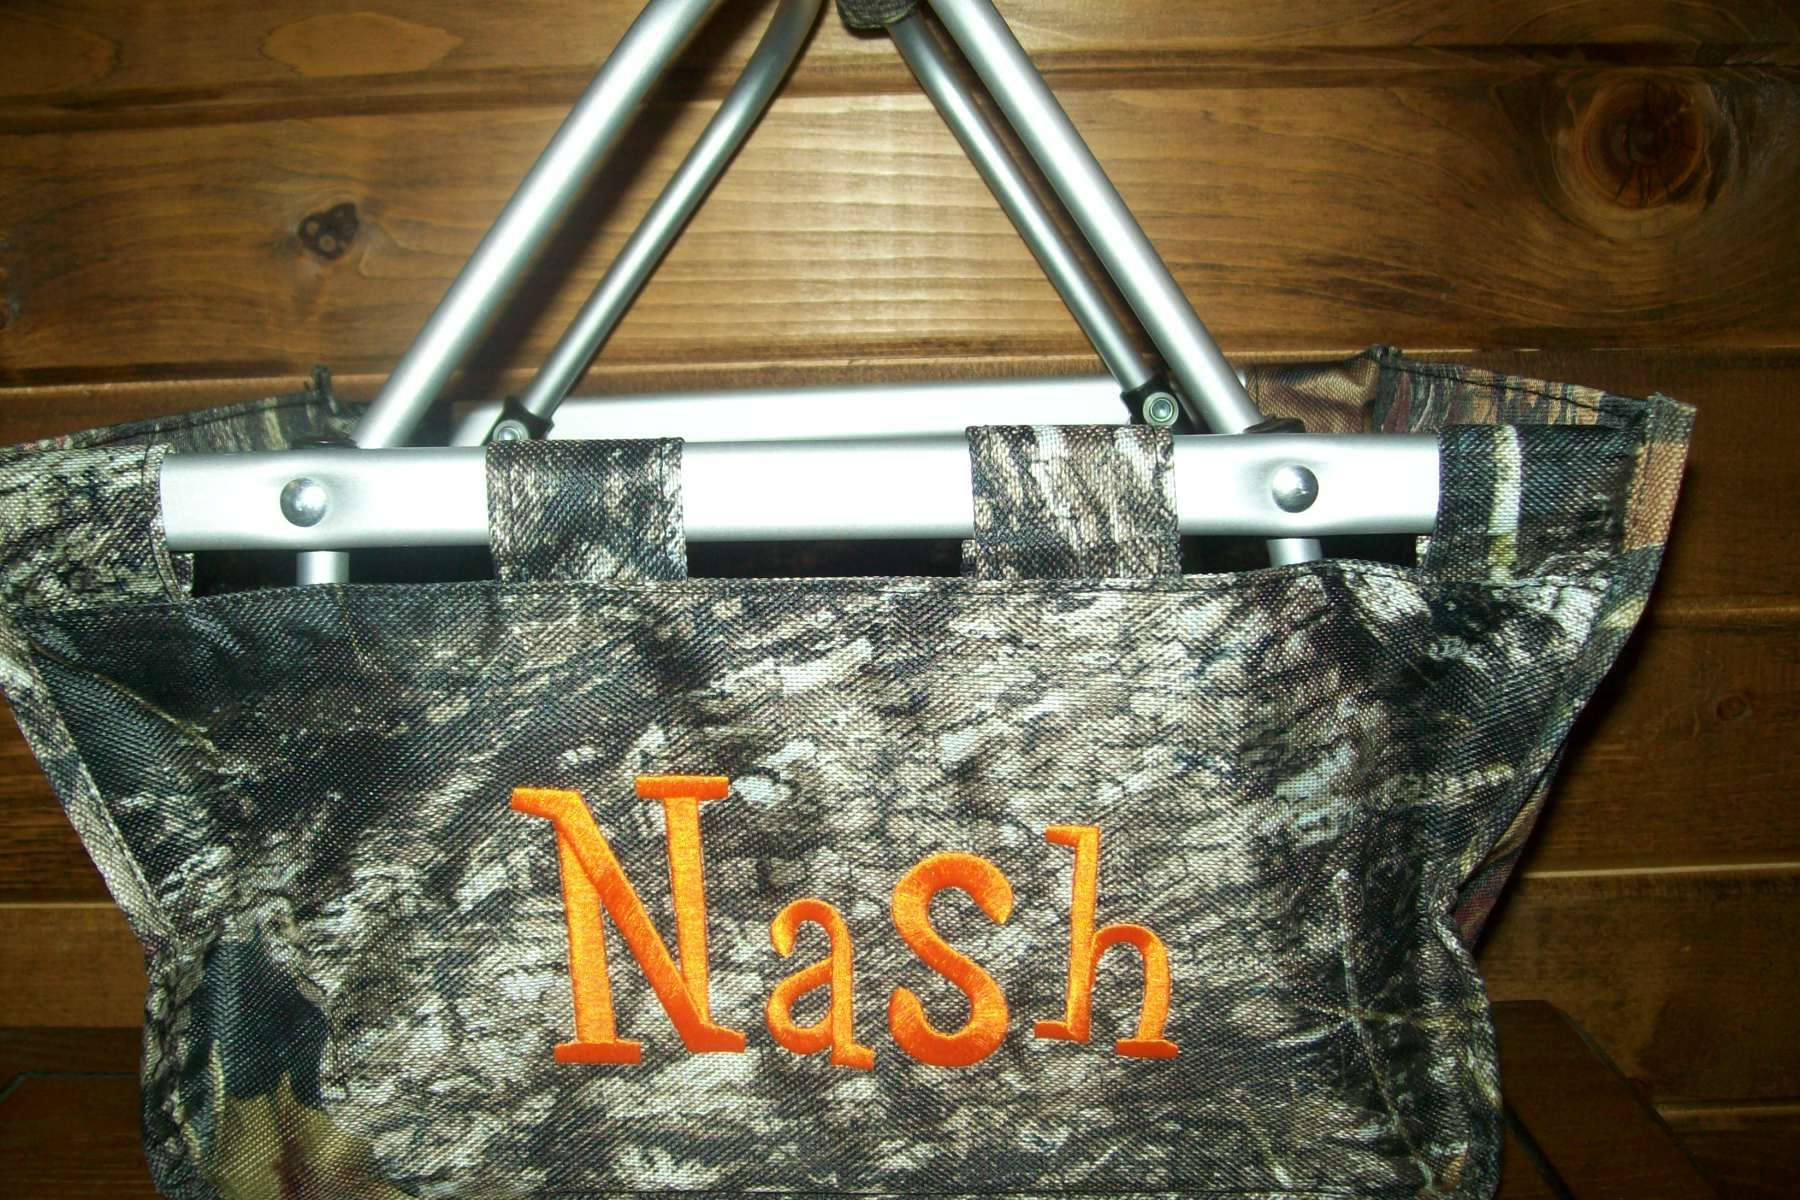 Personalized Easter baskets, tote bags with free shipping at www.personalizeyouritems.com $30